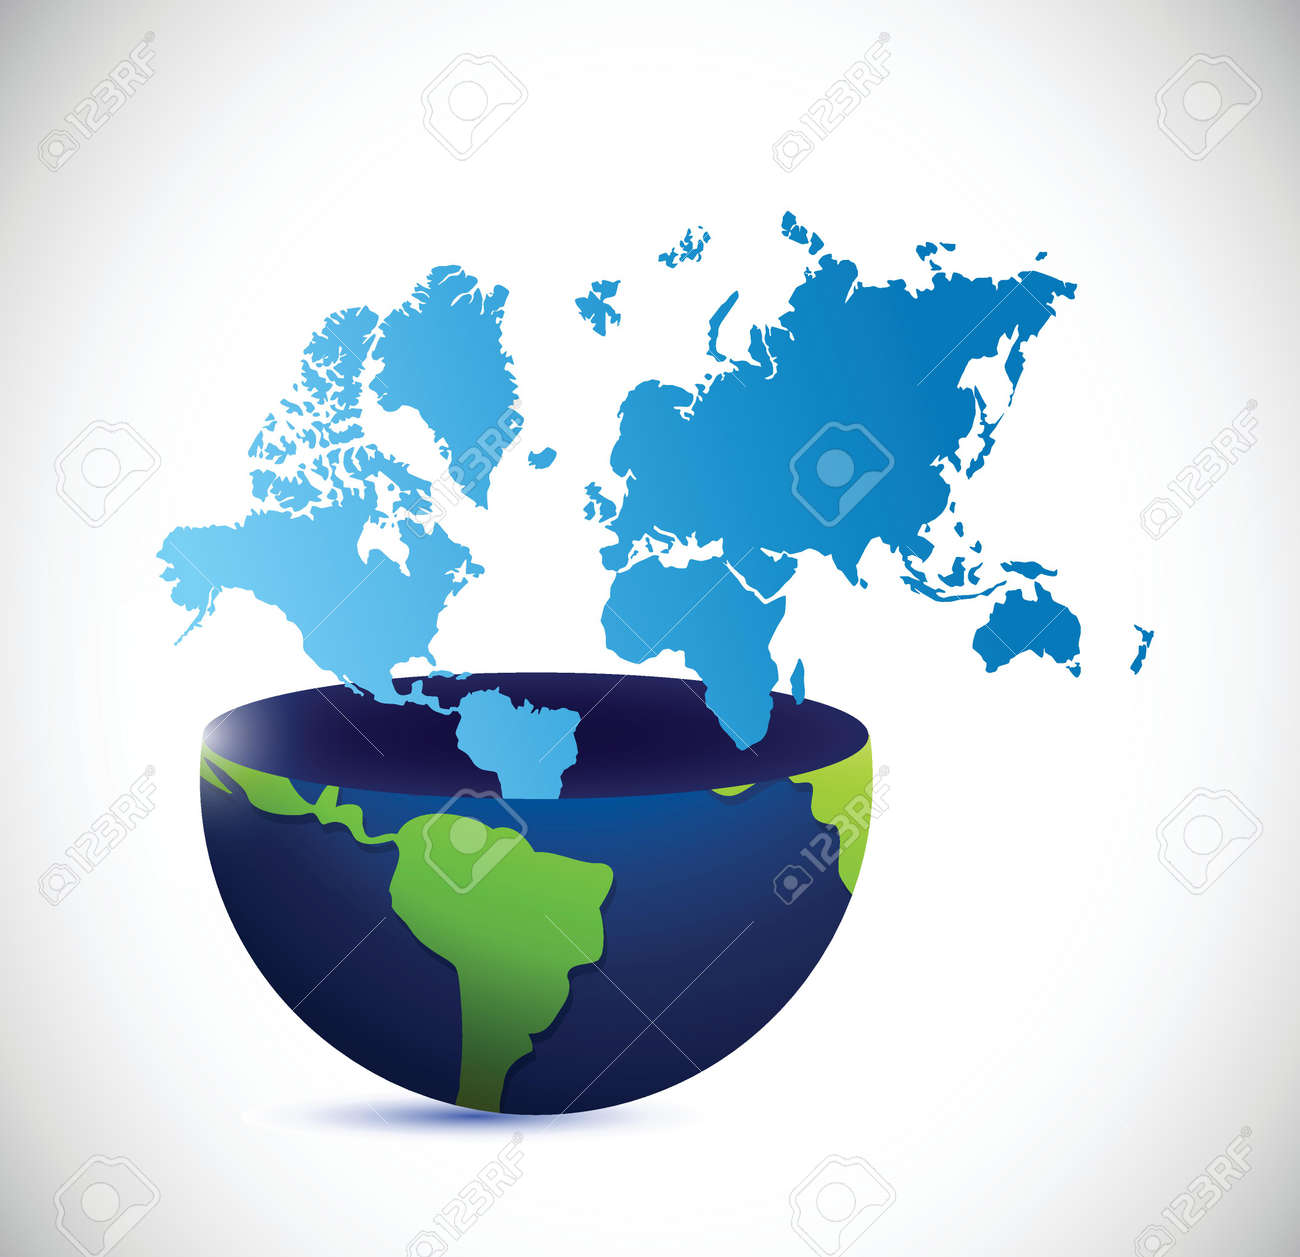 Half globe and world map illustration design over a white background half globe and world map illustration design over a white background stock vector 27287822 gumiabroncs Image collections